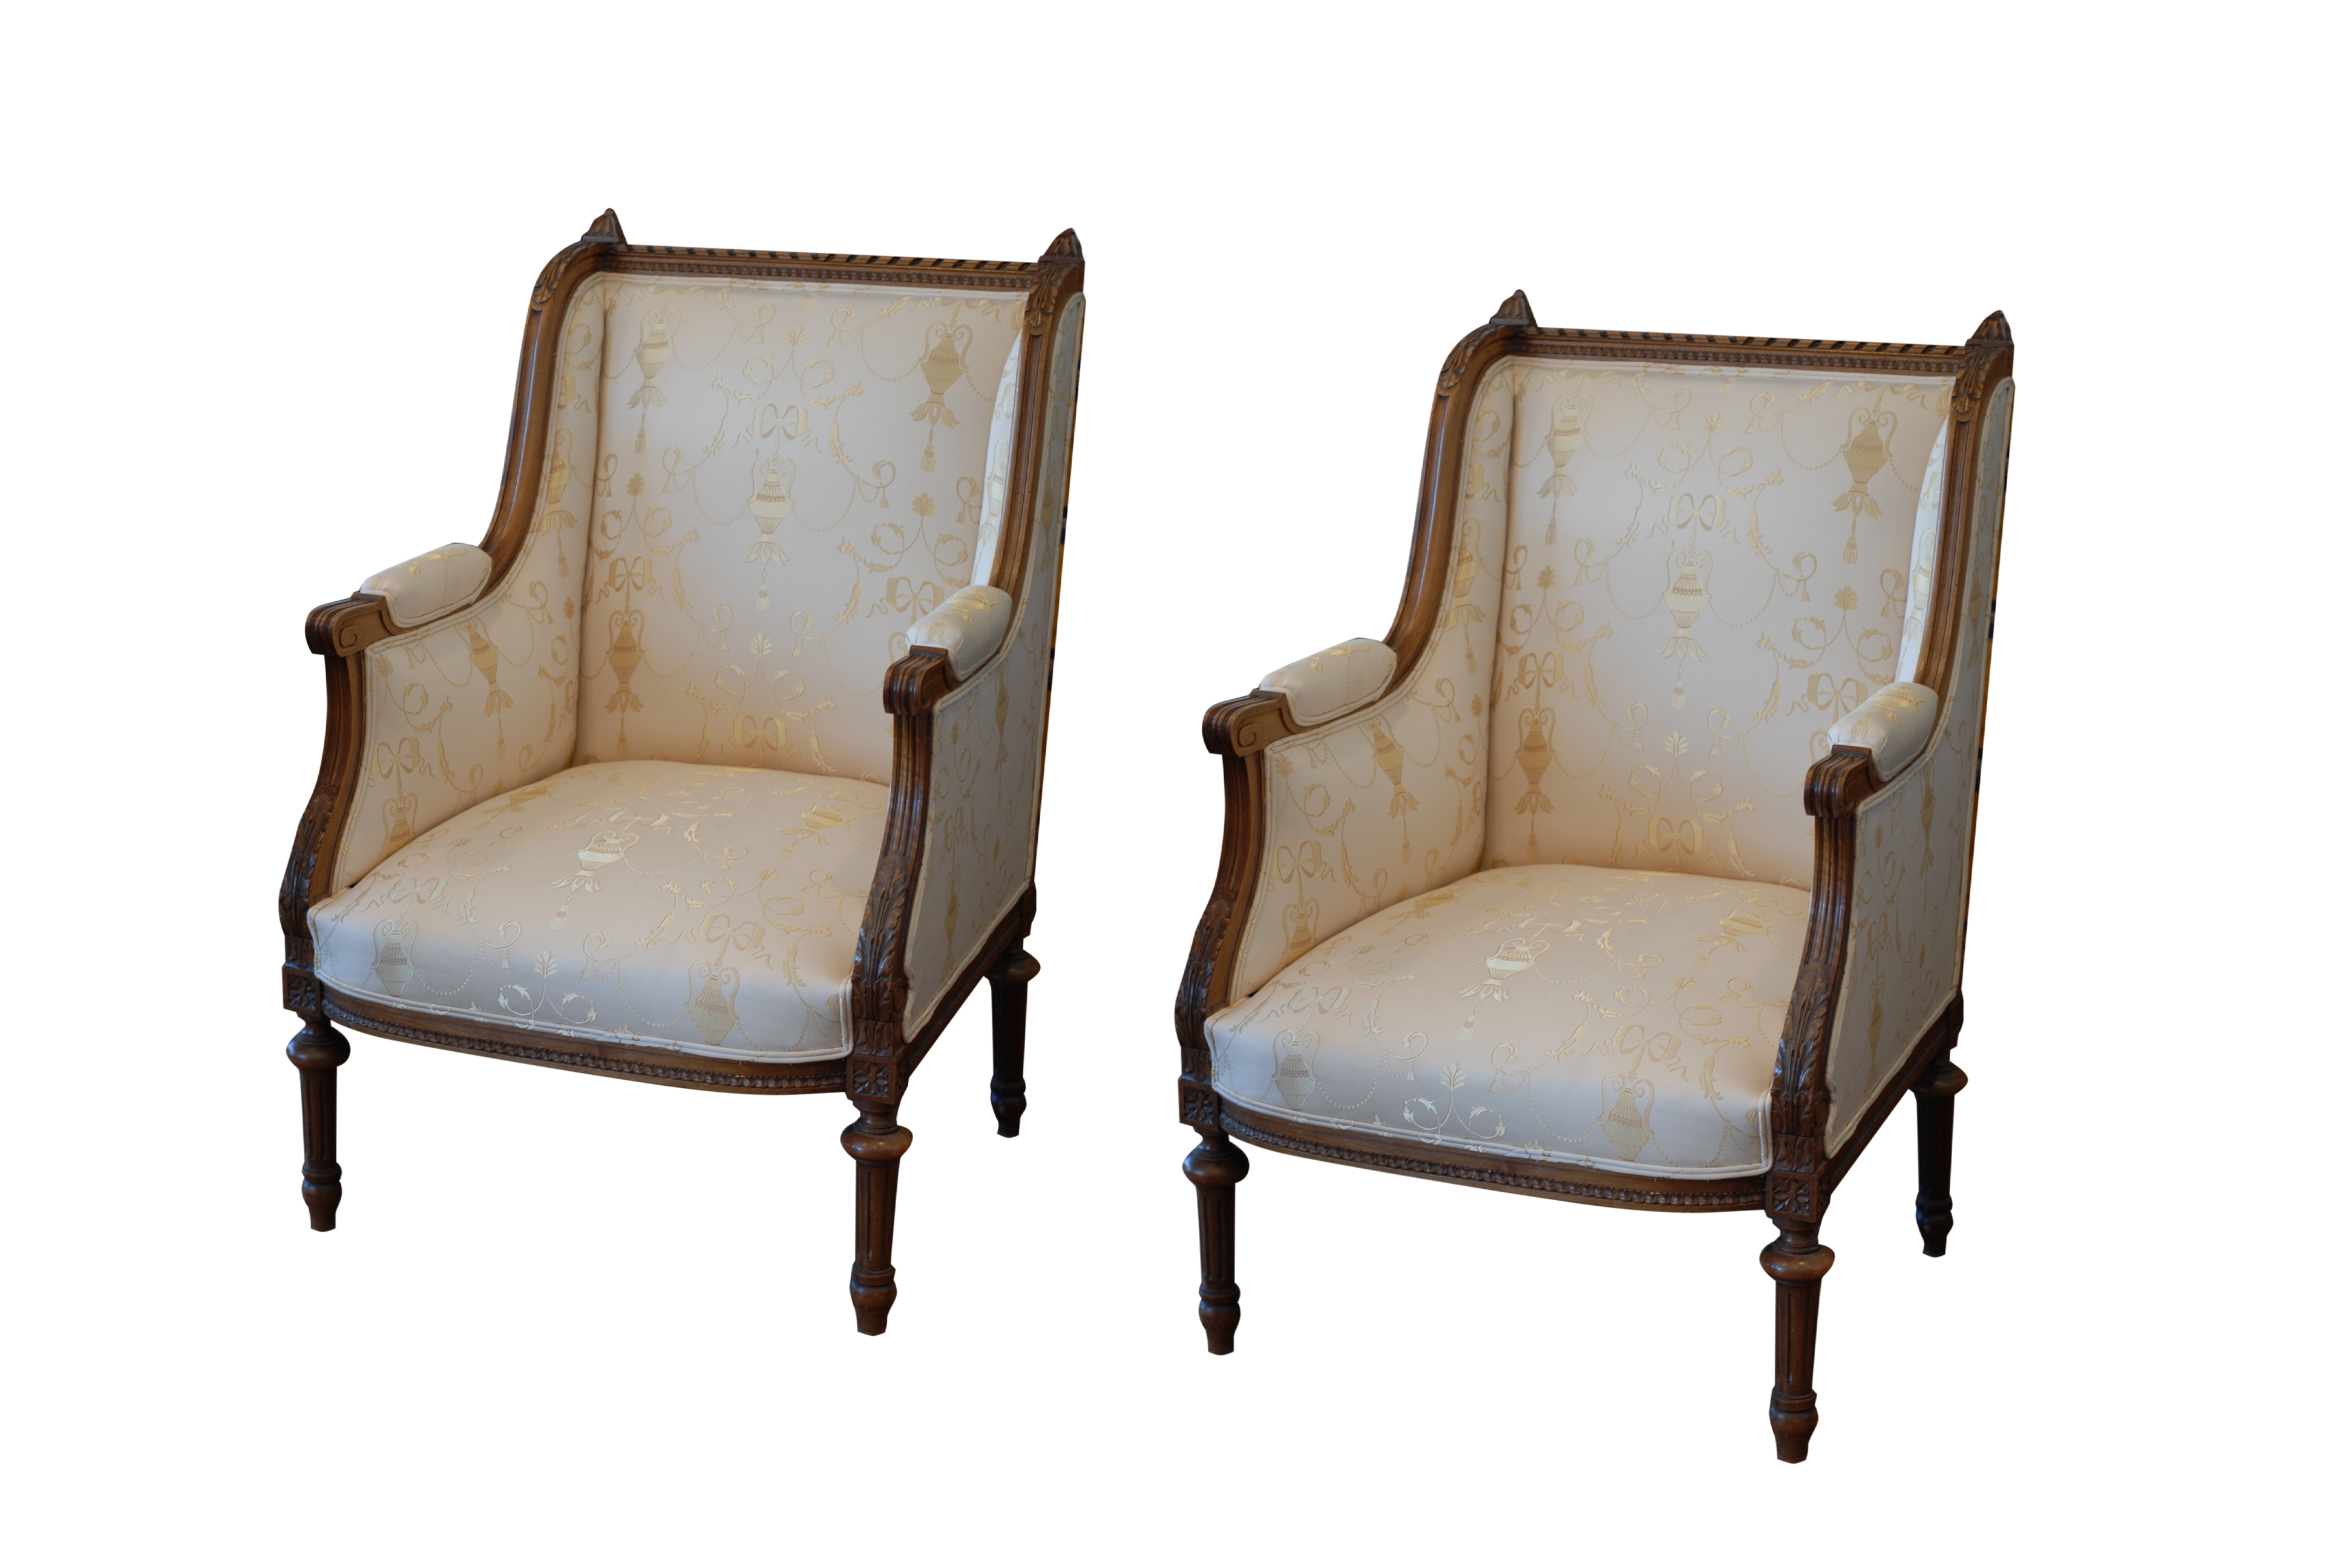 chair antique styles cover rental philadelphia bergère style le barn antiques  stamford ct